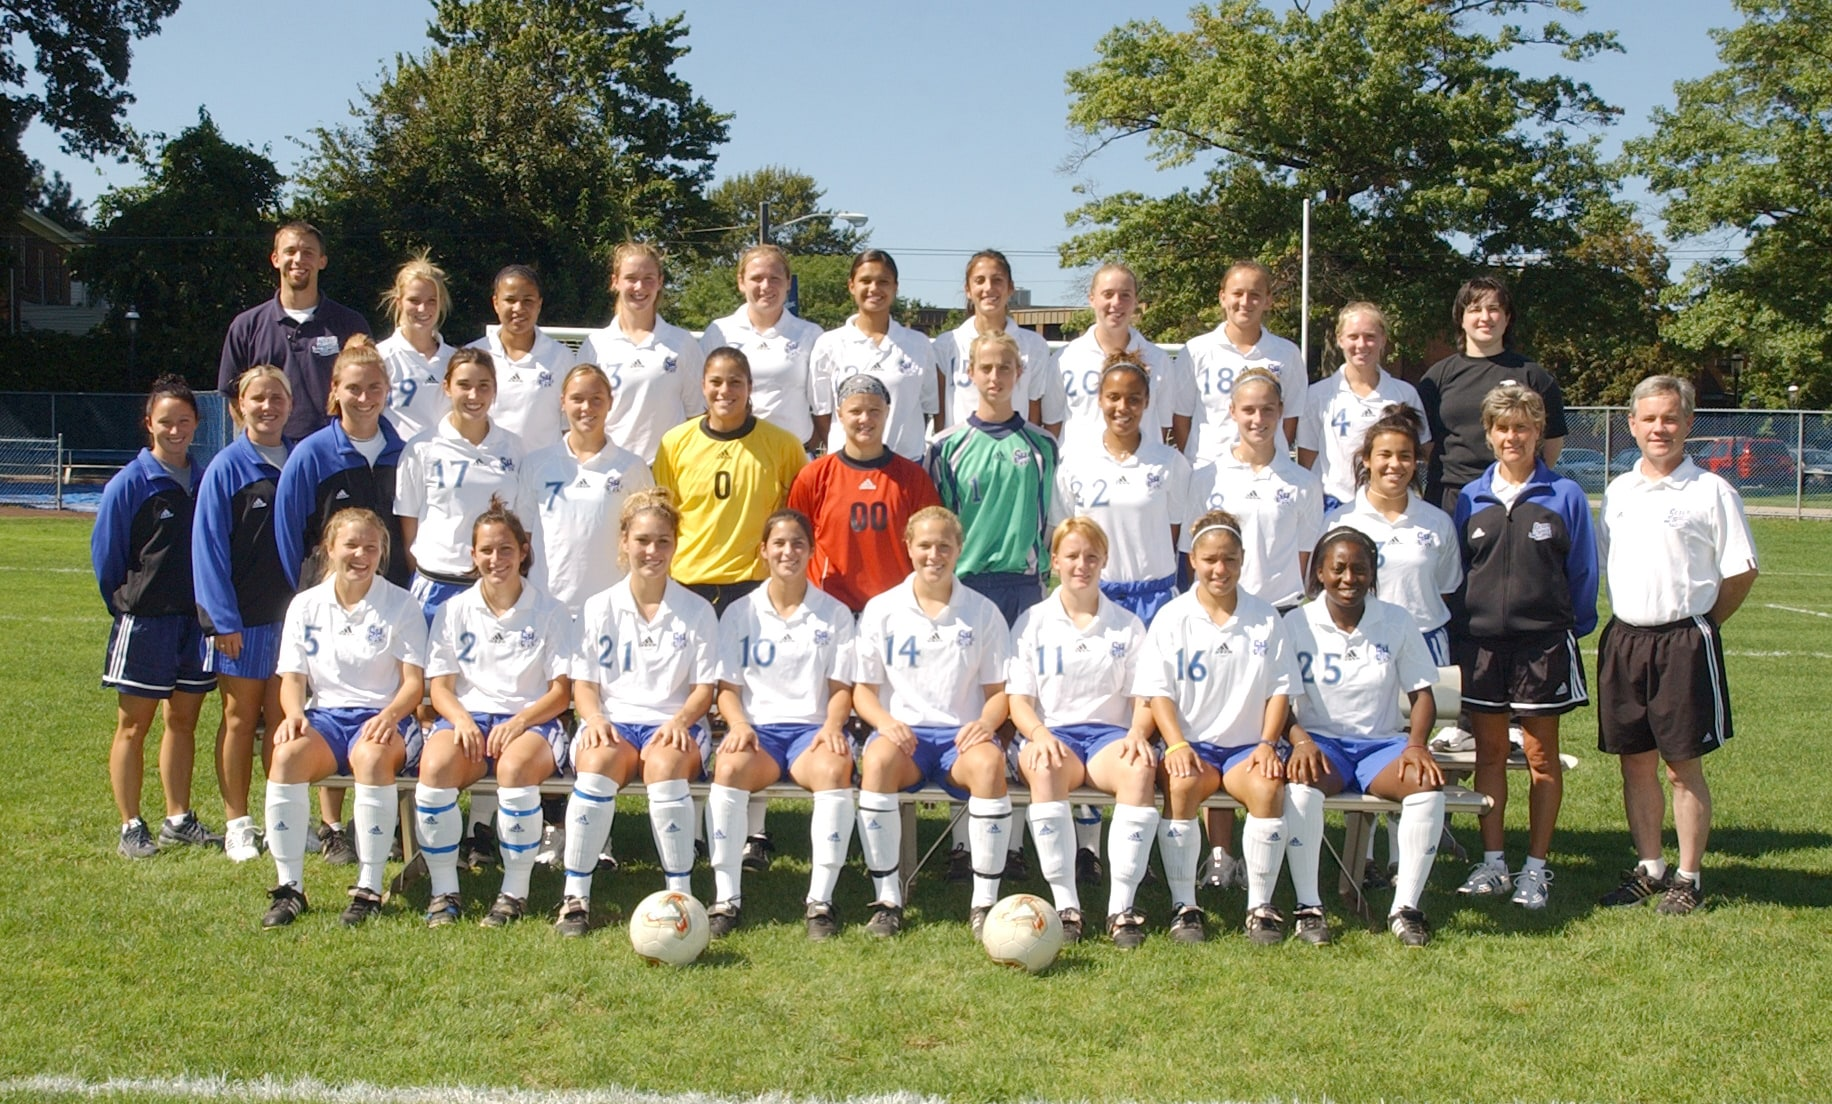 Mary Jennings with the Women's Soccer Team